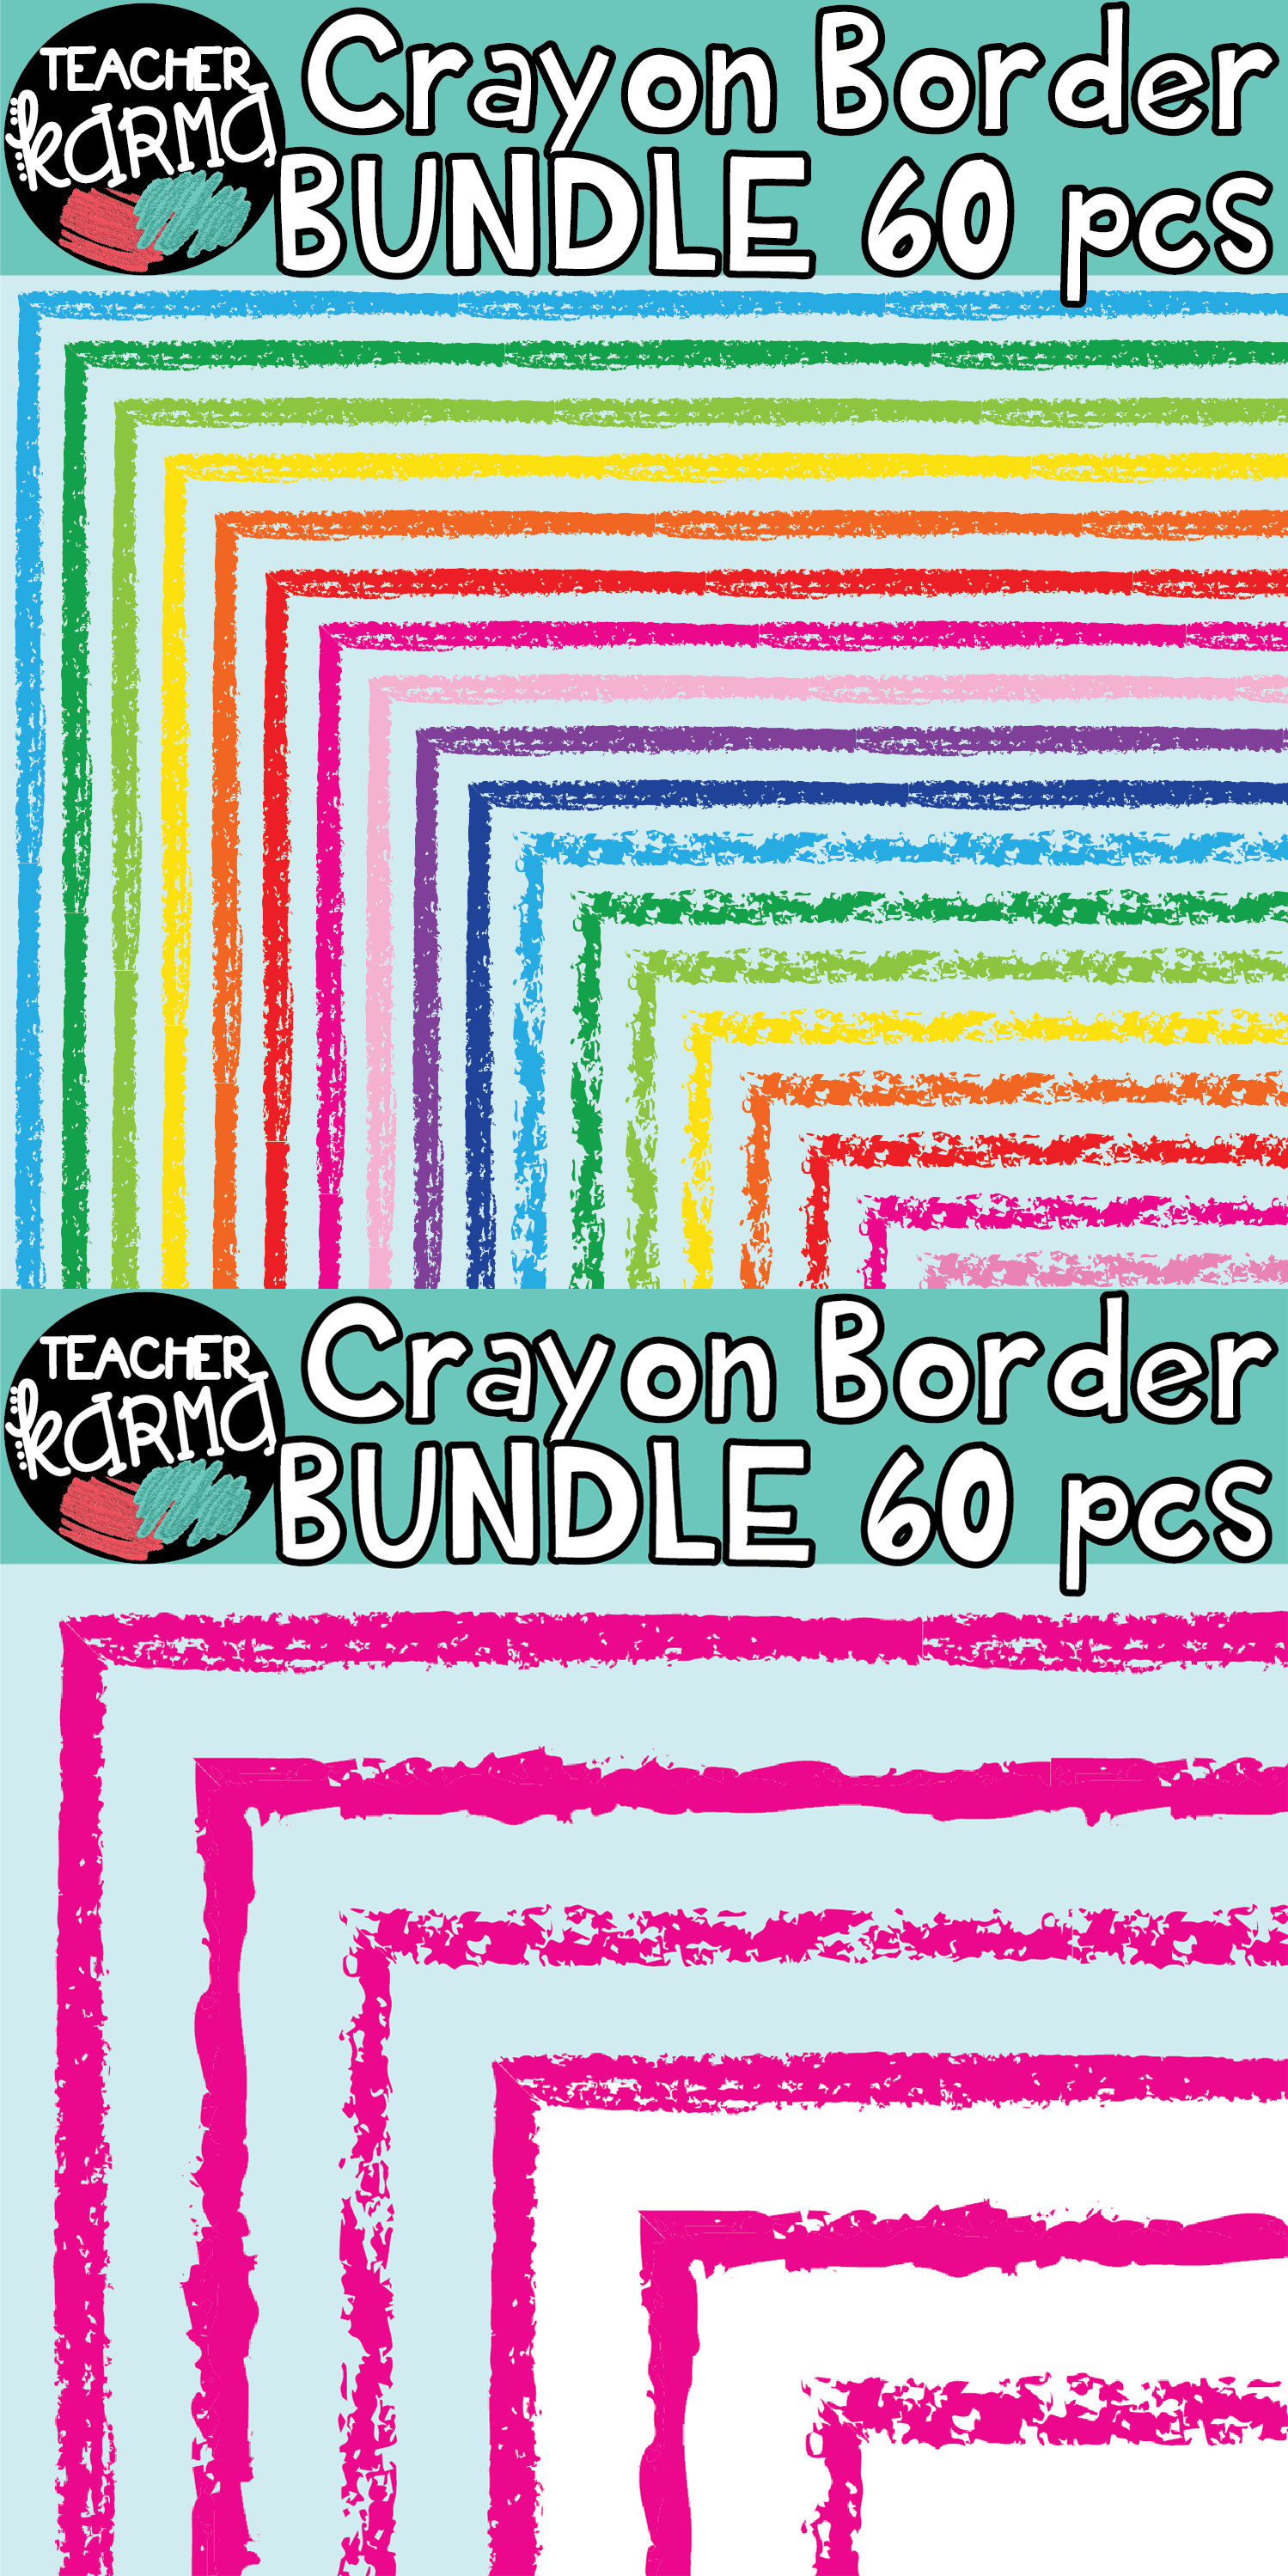 Crayon Border Clipart Bundle Perfect For Classroom Resources And Teachers Pay Teachers Sellers Teachers Pay Teachers Seller Resource Classroom Teacher Clipart